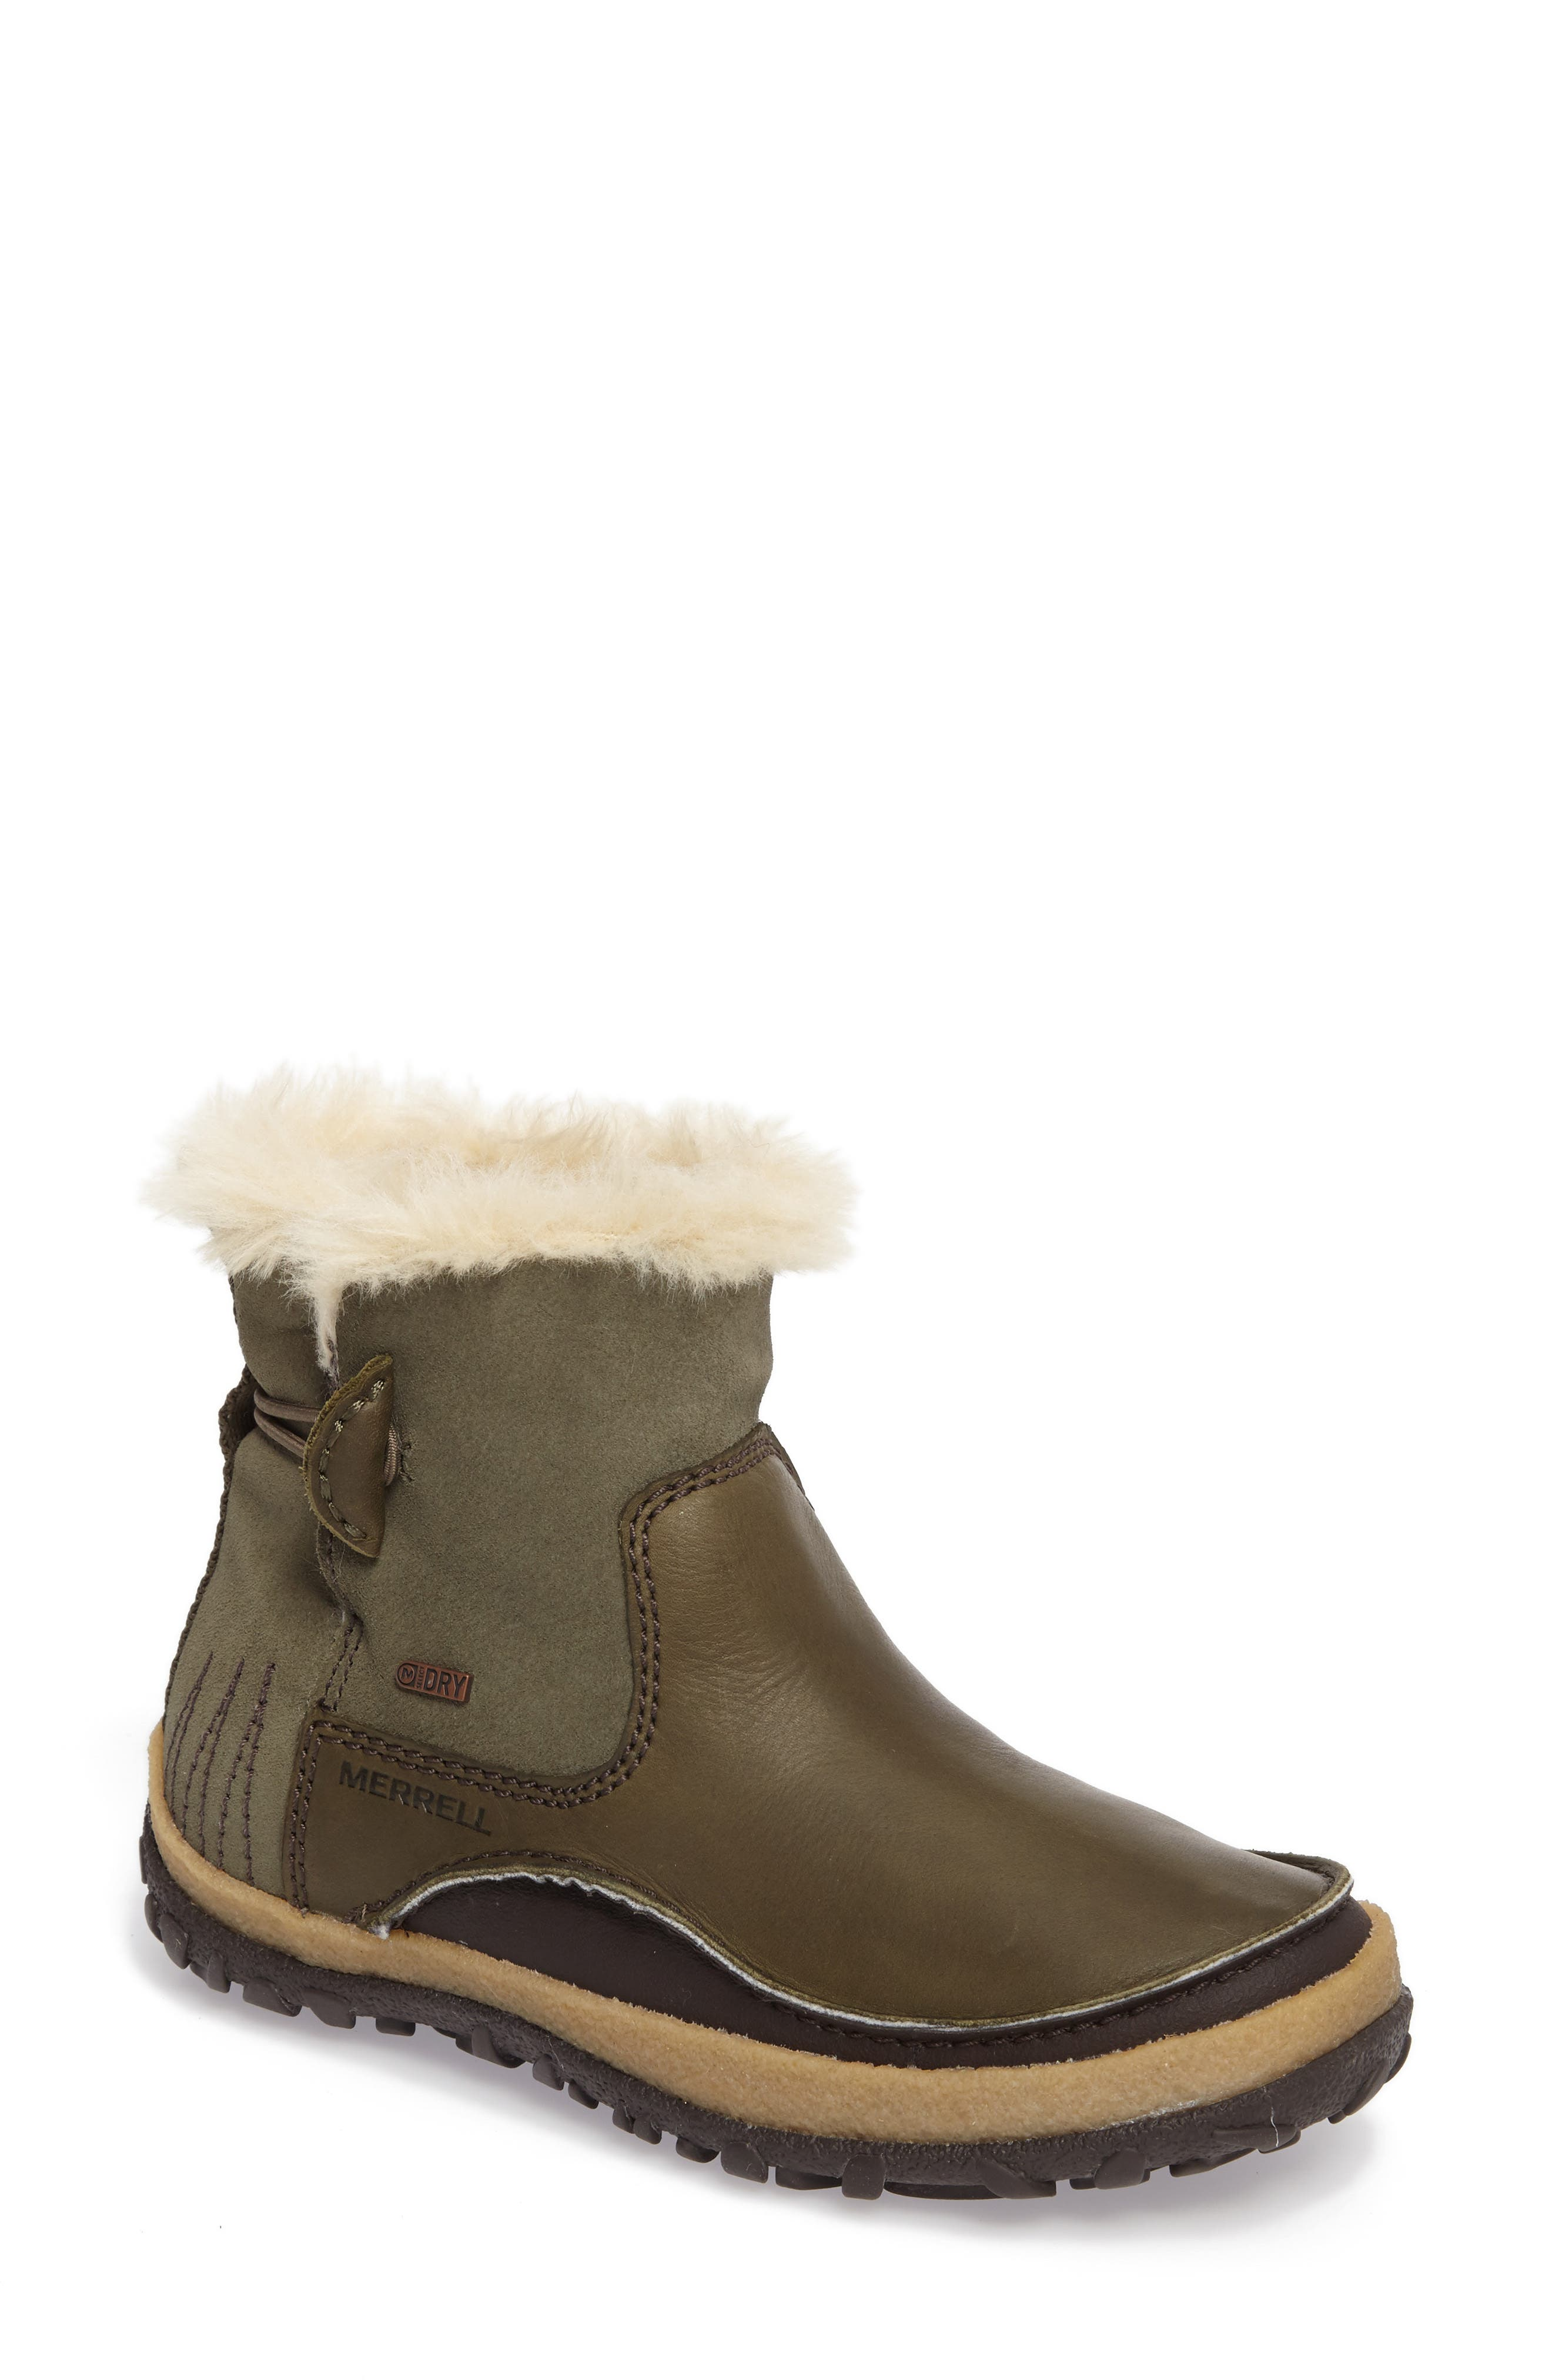 Tremblant Pull-On Polar Waterproof Bootie,                             Main thumbnail 4, color,